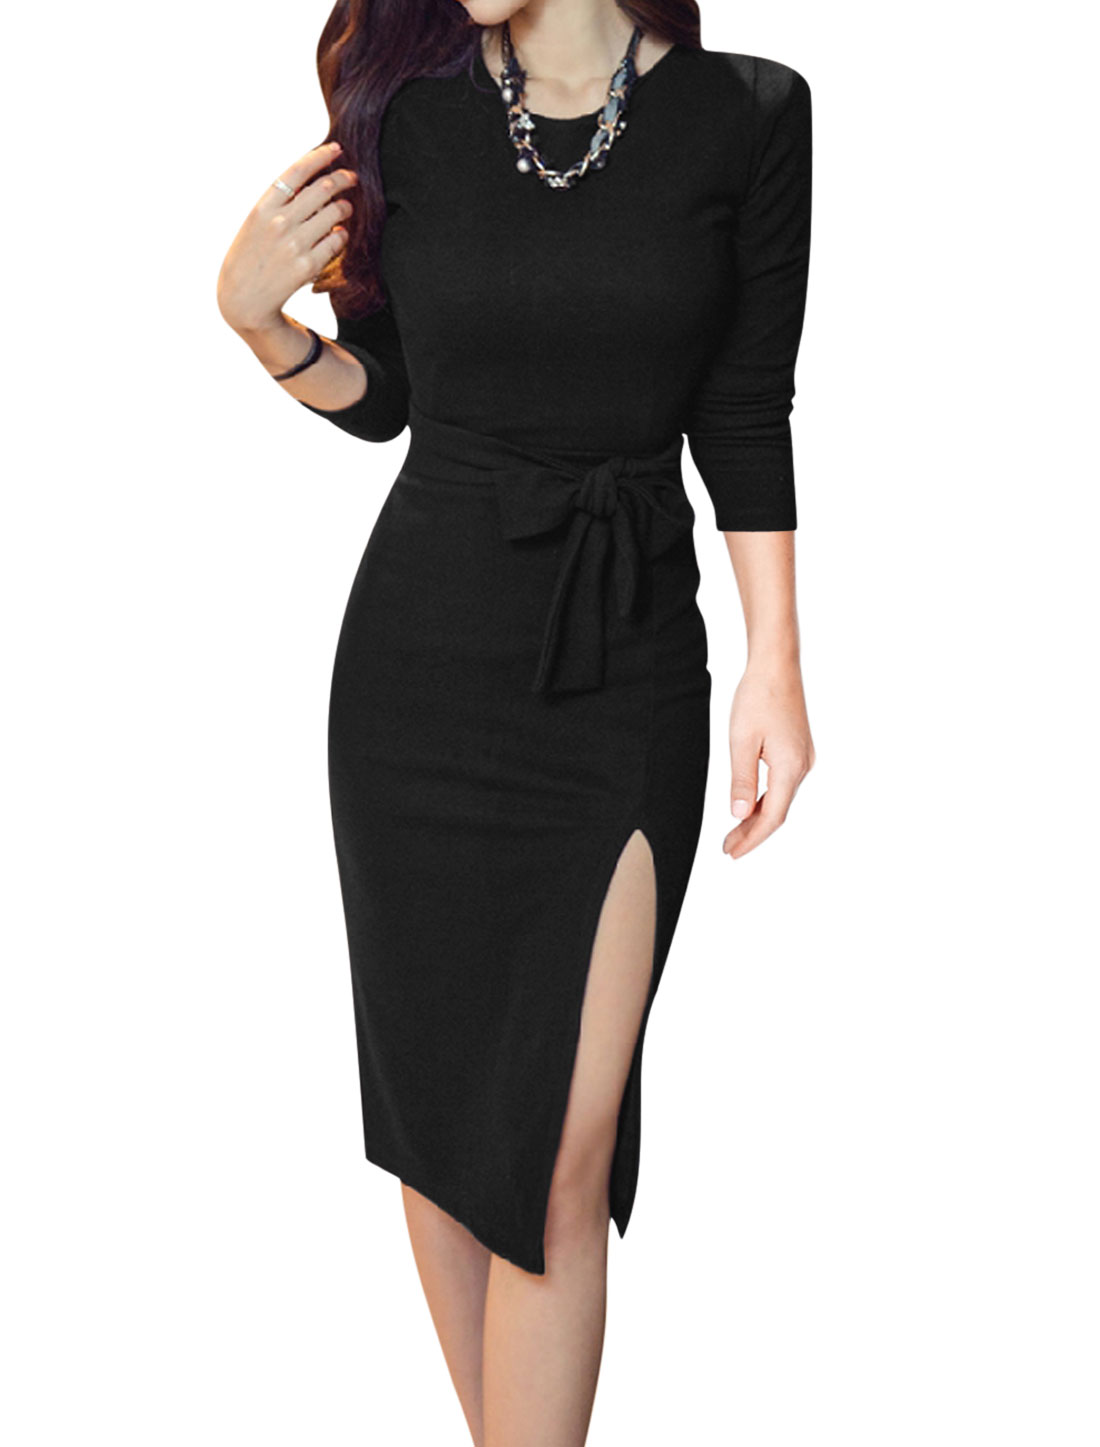 Women Split Side Slim Fit Bodycon Dress w Waist String Black S